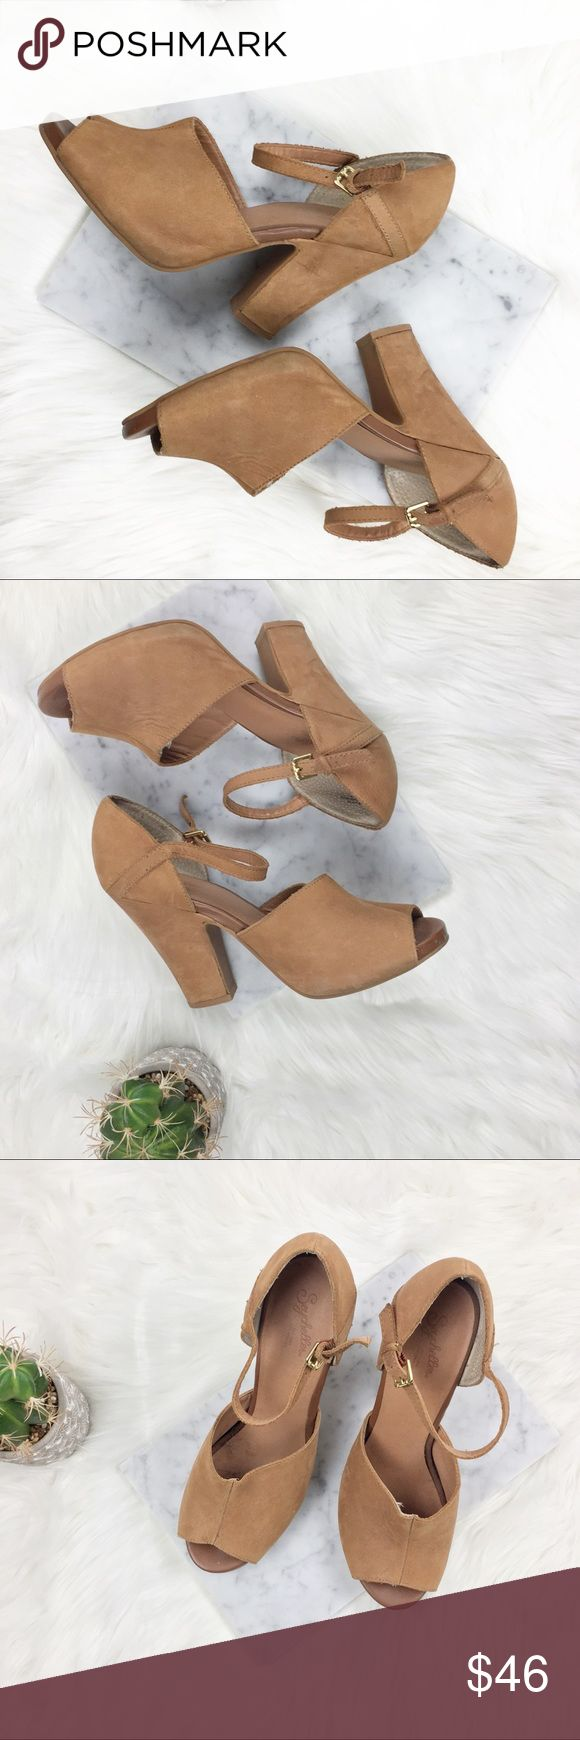 Seychelles open toe tan leather heeled sandals Lovely heeled sandals by Seychelles in a neutral tan color that goes with pretty much anything. These are great shoes for spring. They are super comfortable!   Preowned.  shows few scuffs and signs of wear. Seychelles Shoes Sandals